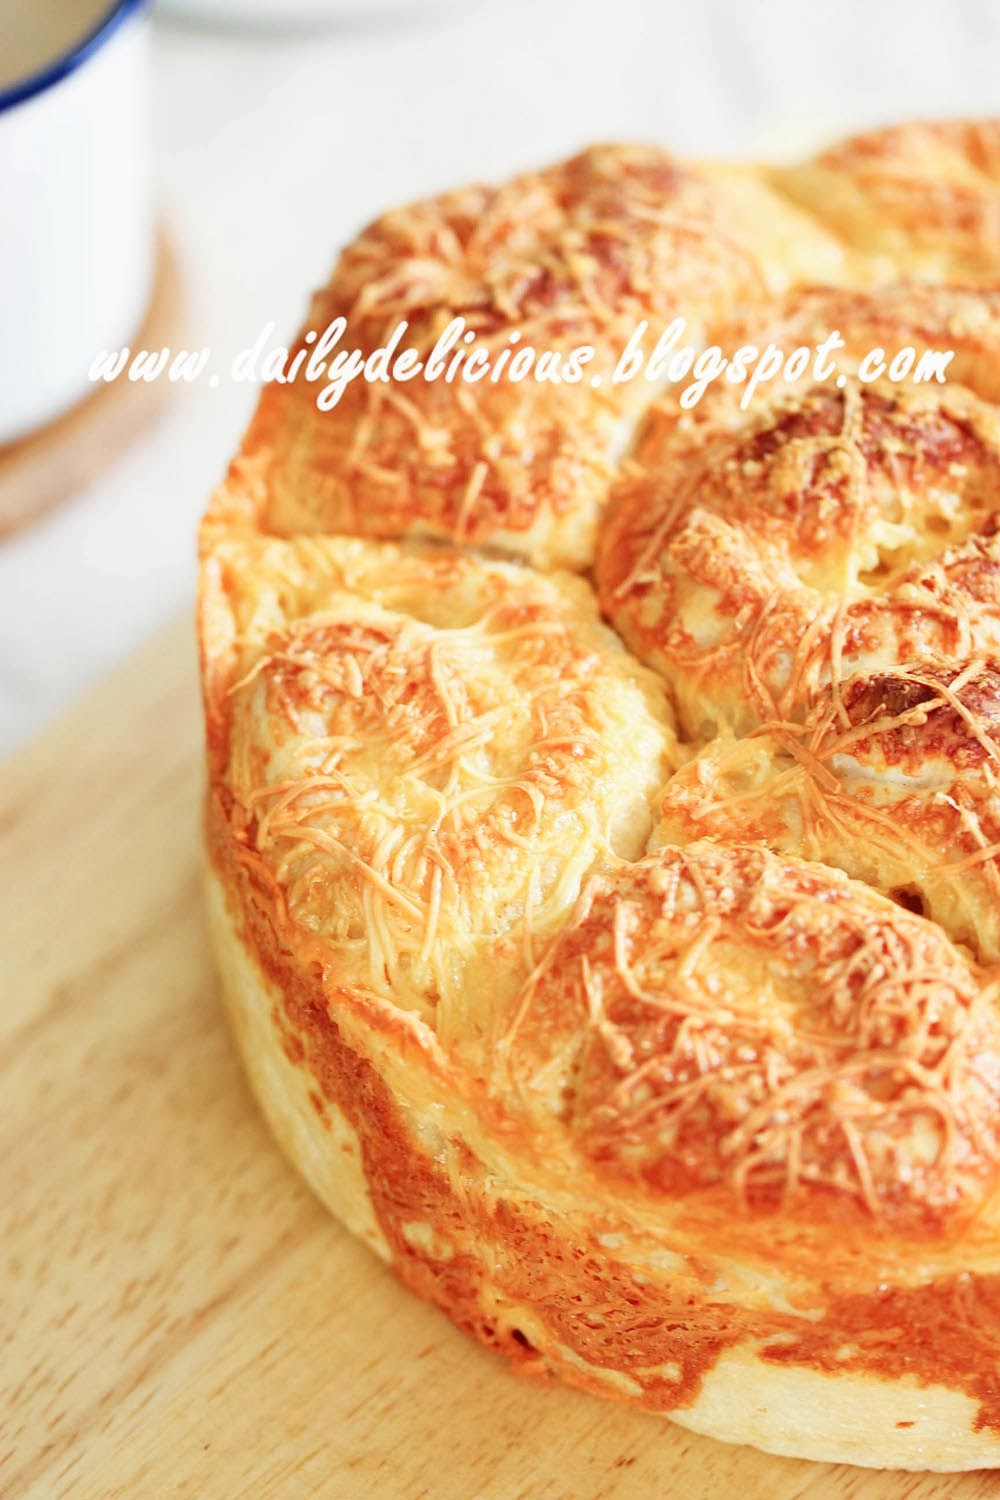 dailydelicious: Cheesy bread: Lovely golden bread